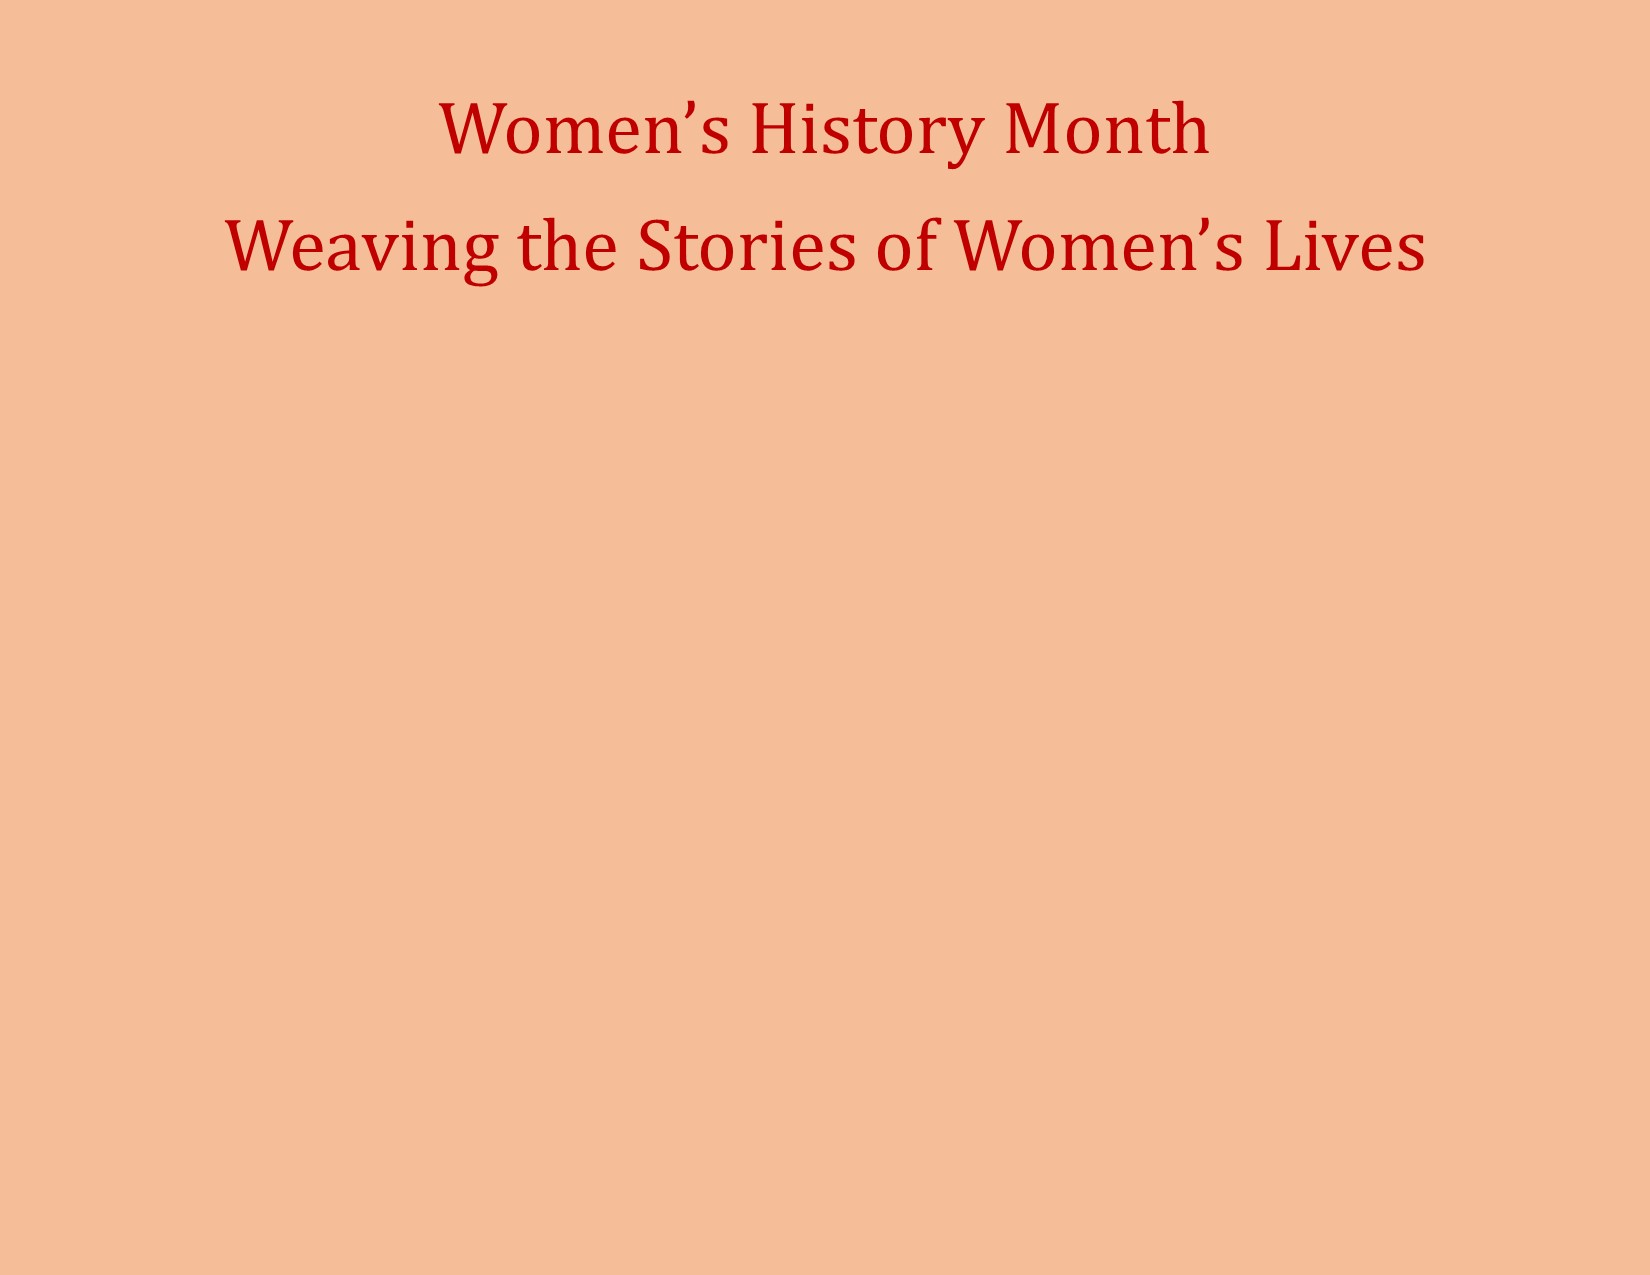 Image: 2015 Women's History Month